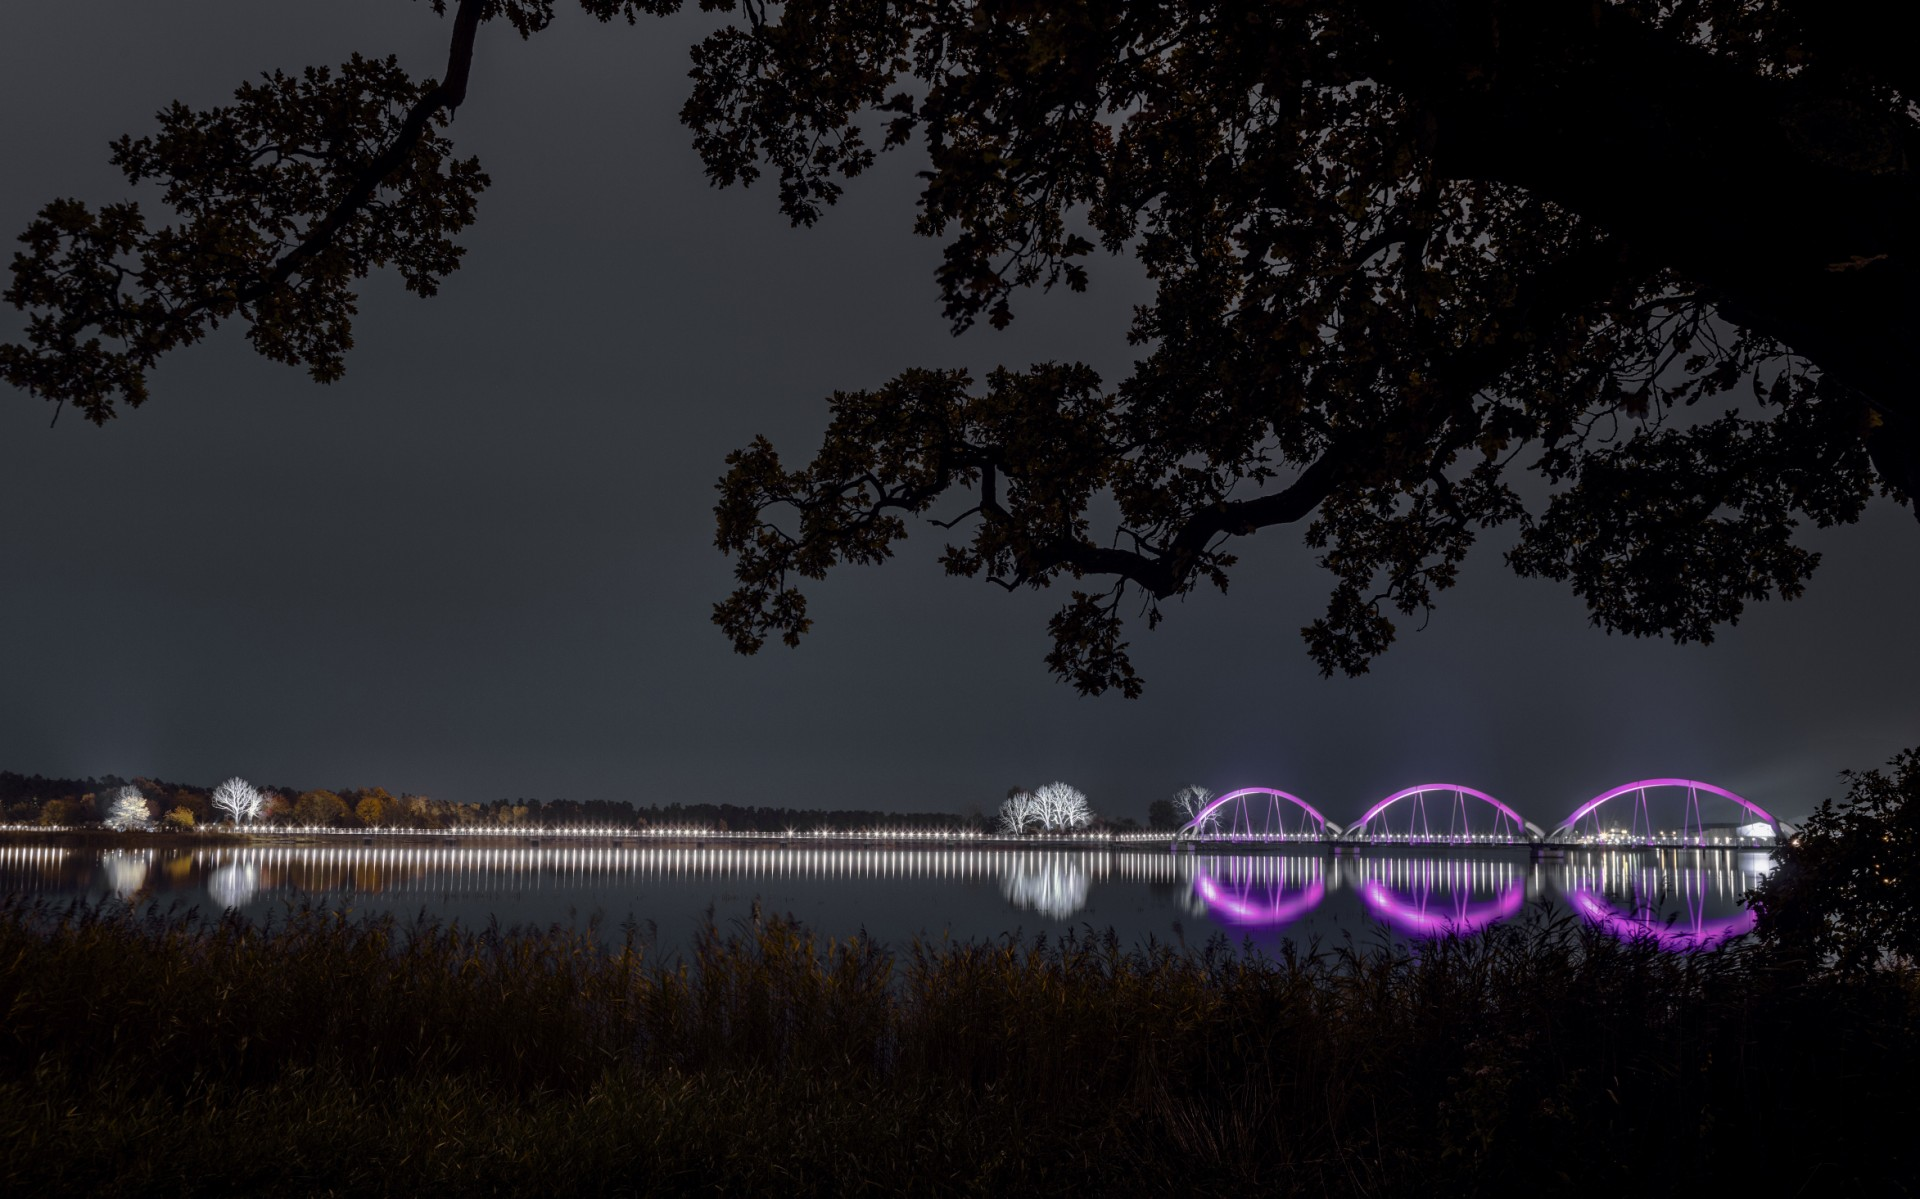 Designers Ljusarkitektur used Lumenpulse LED fixtures to enhance the bridge's landmark status, without impacting the local habitat.